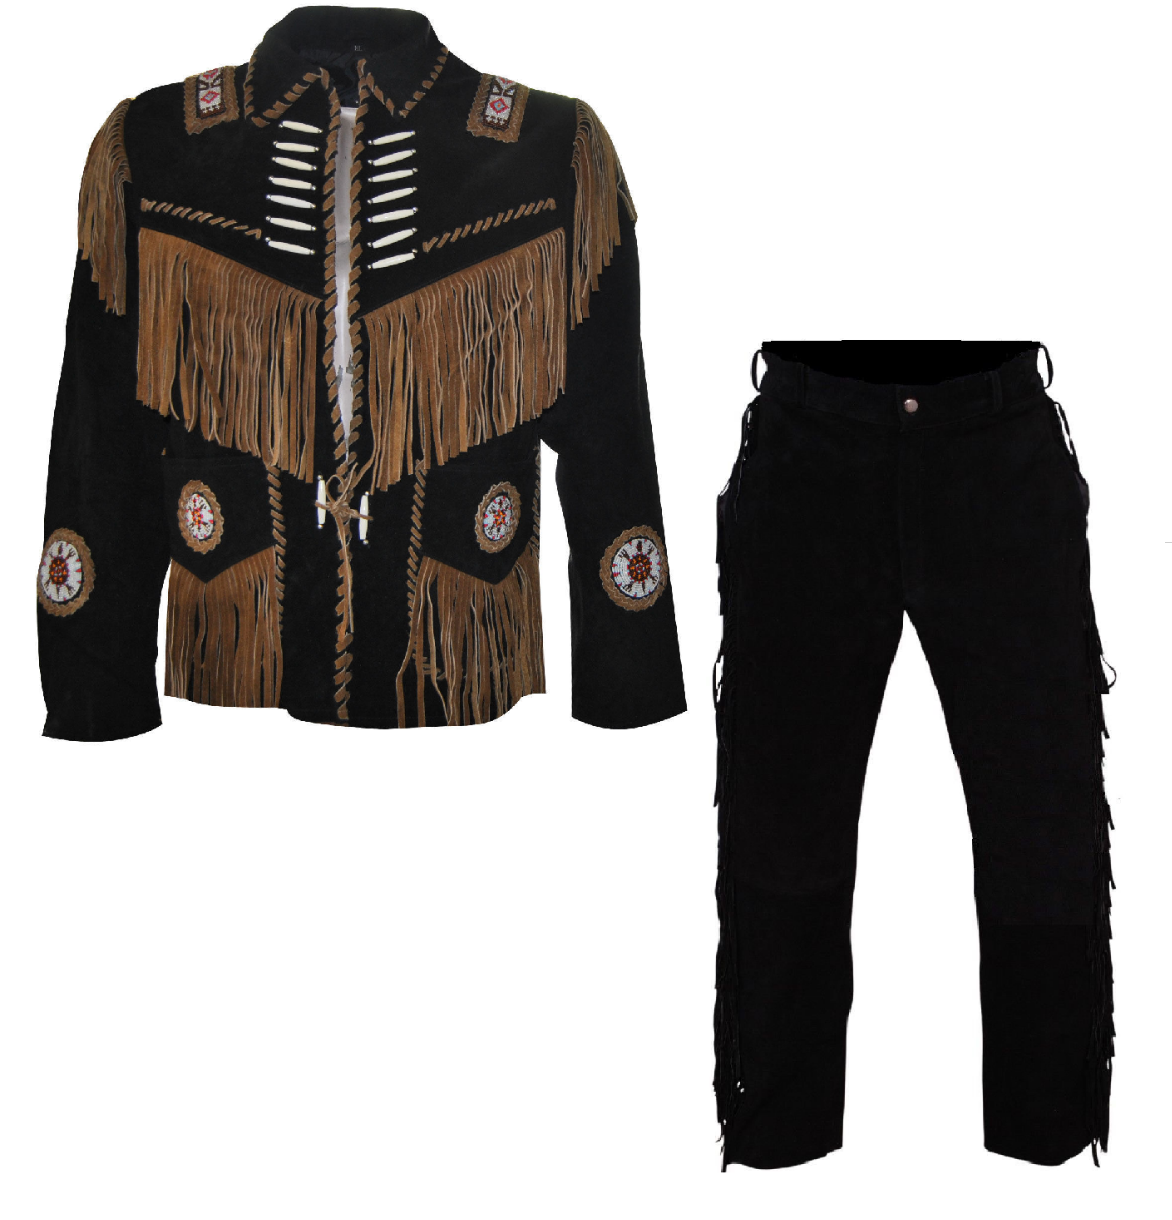 Primary image for Men's New Native American Buckskin Black Suede Leather Fringes Shirt & Pant WS24